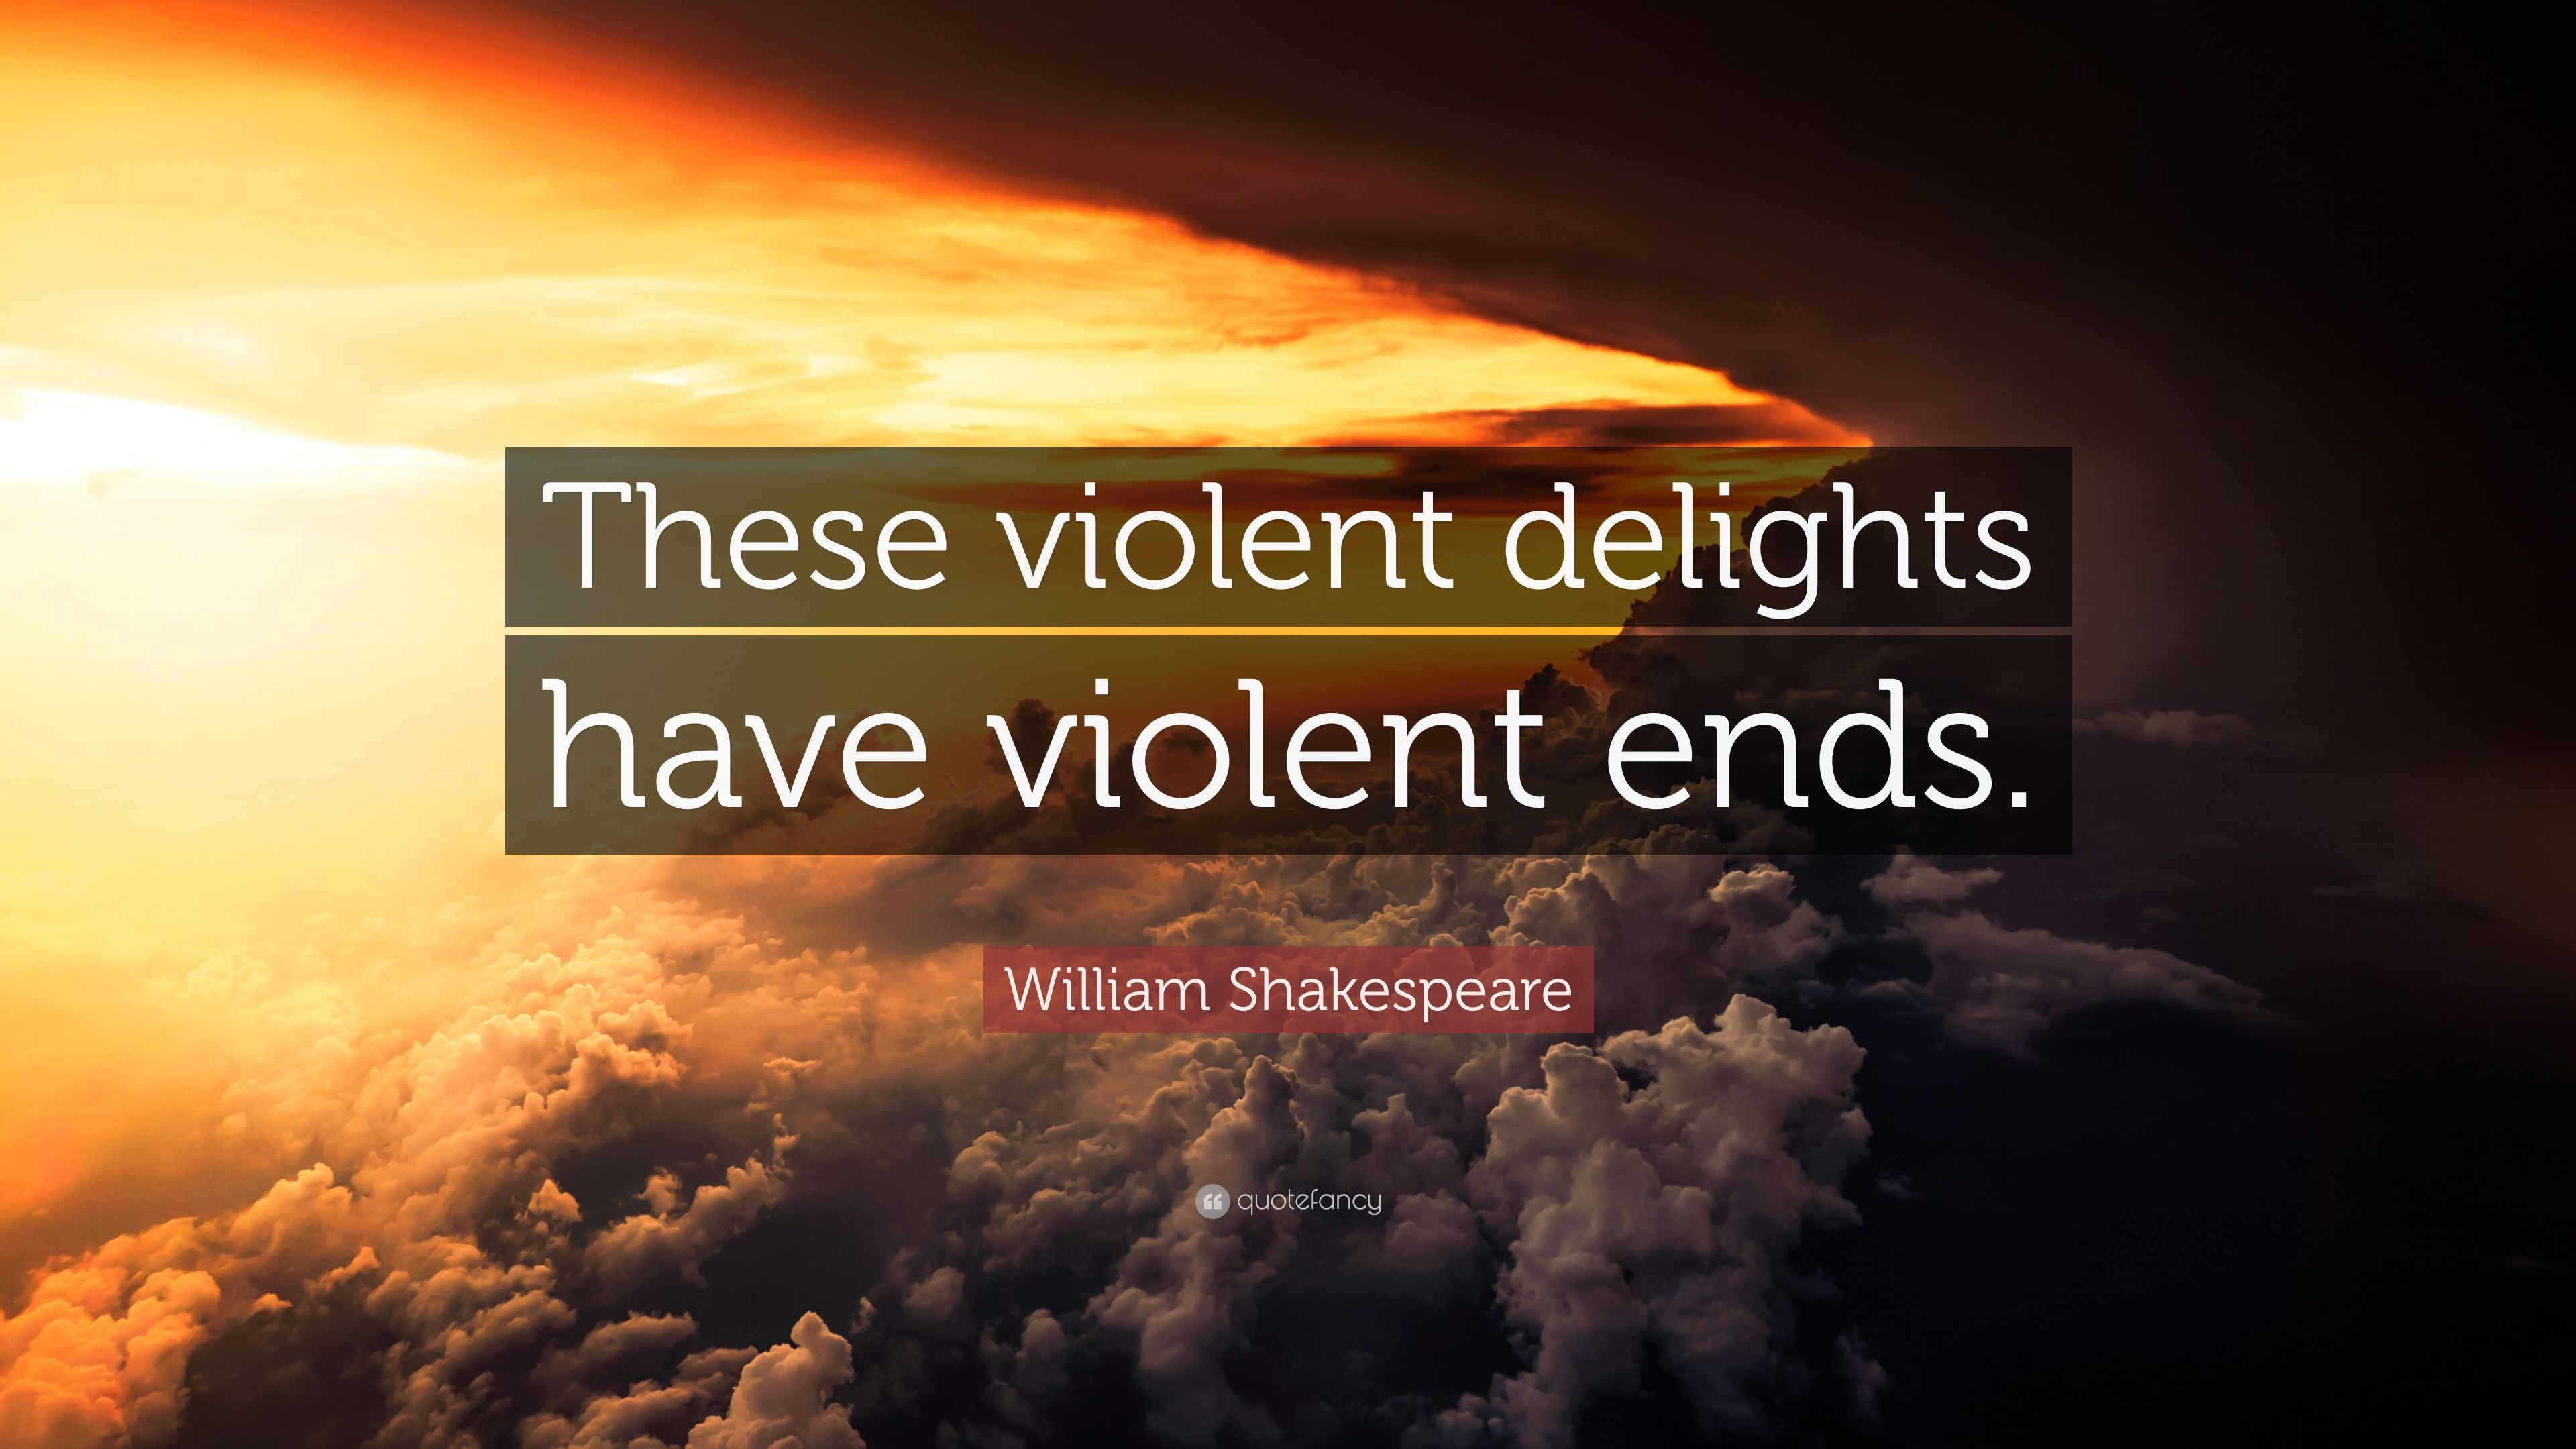 William Shakespeare Love Quotes Wallpaper William Shakespeare Quote These Violent Delights Have